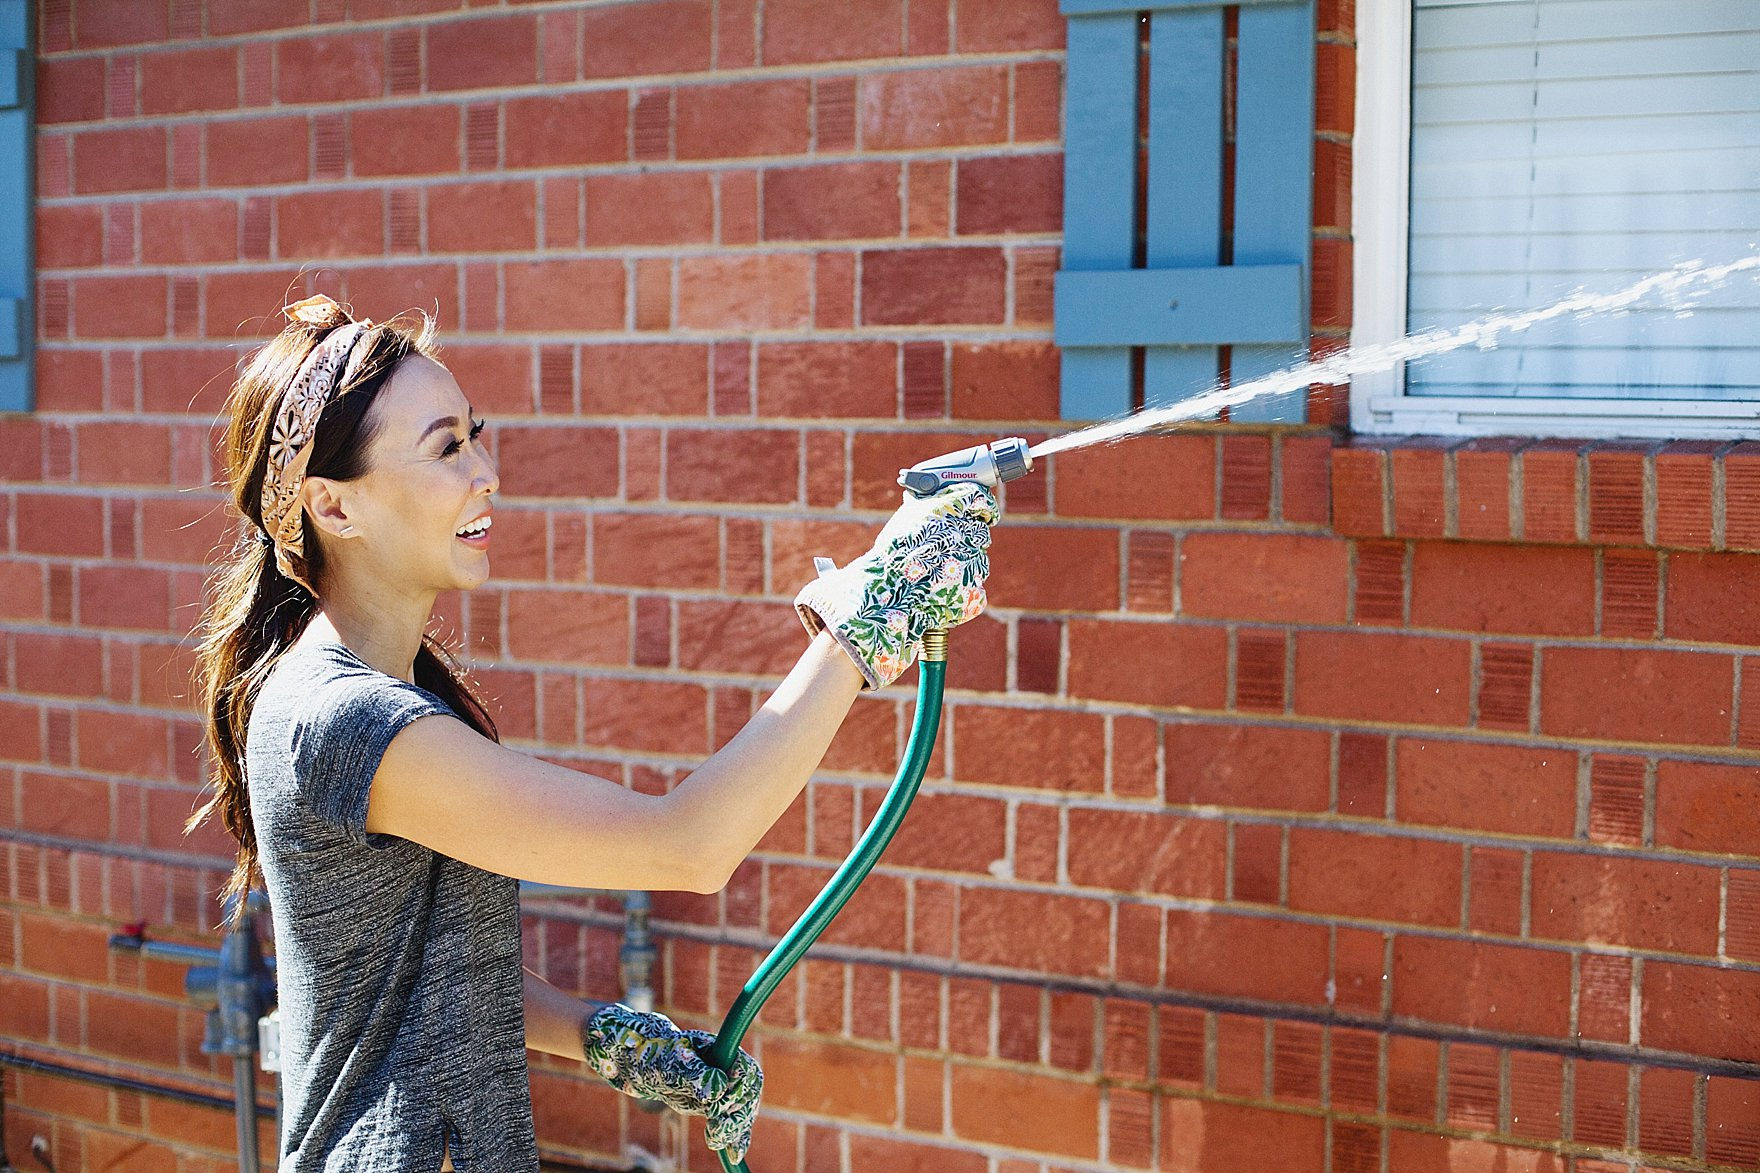 gilmour-power-washer-clean-outside-home-2439   Diana Elizabeth